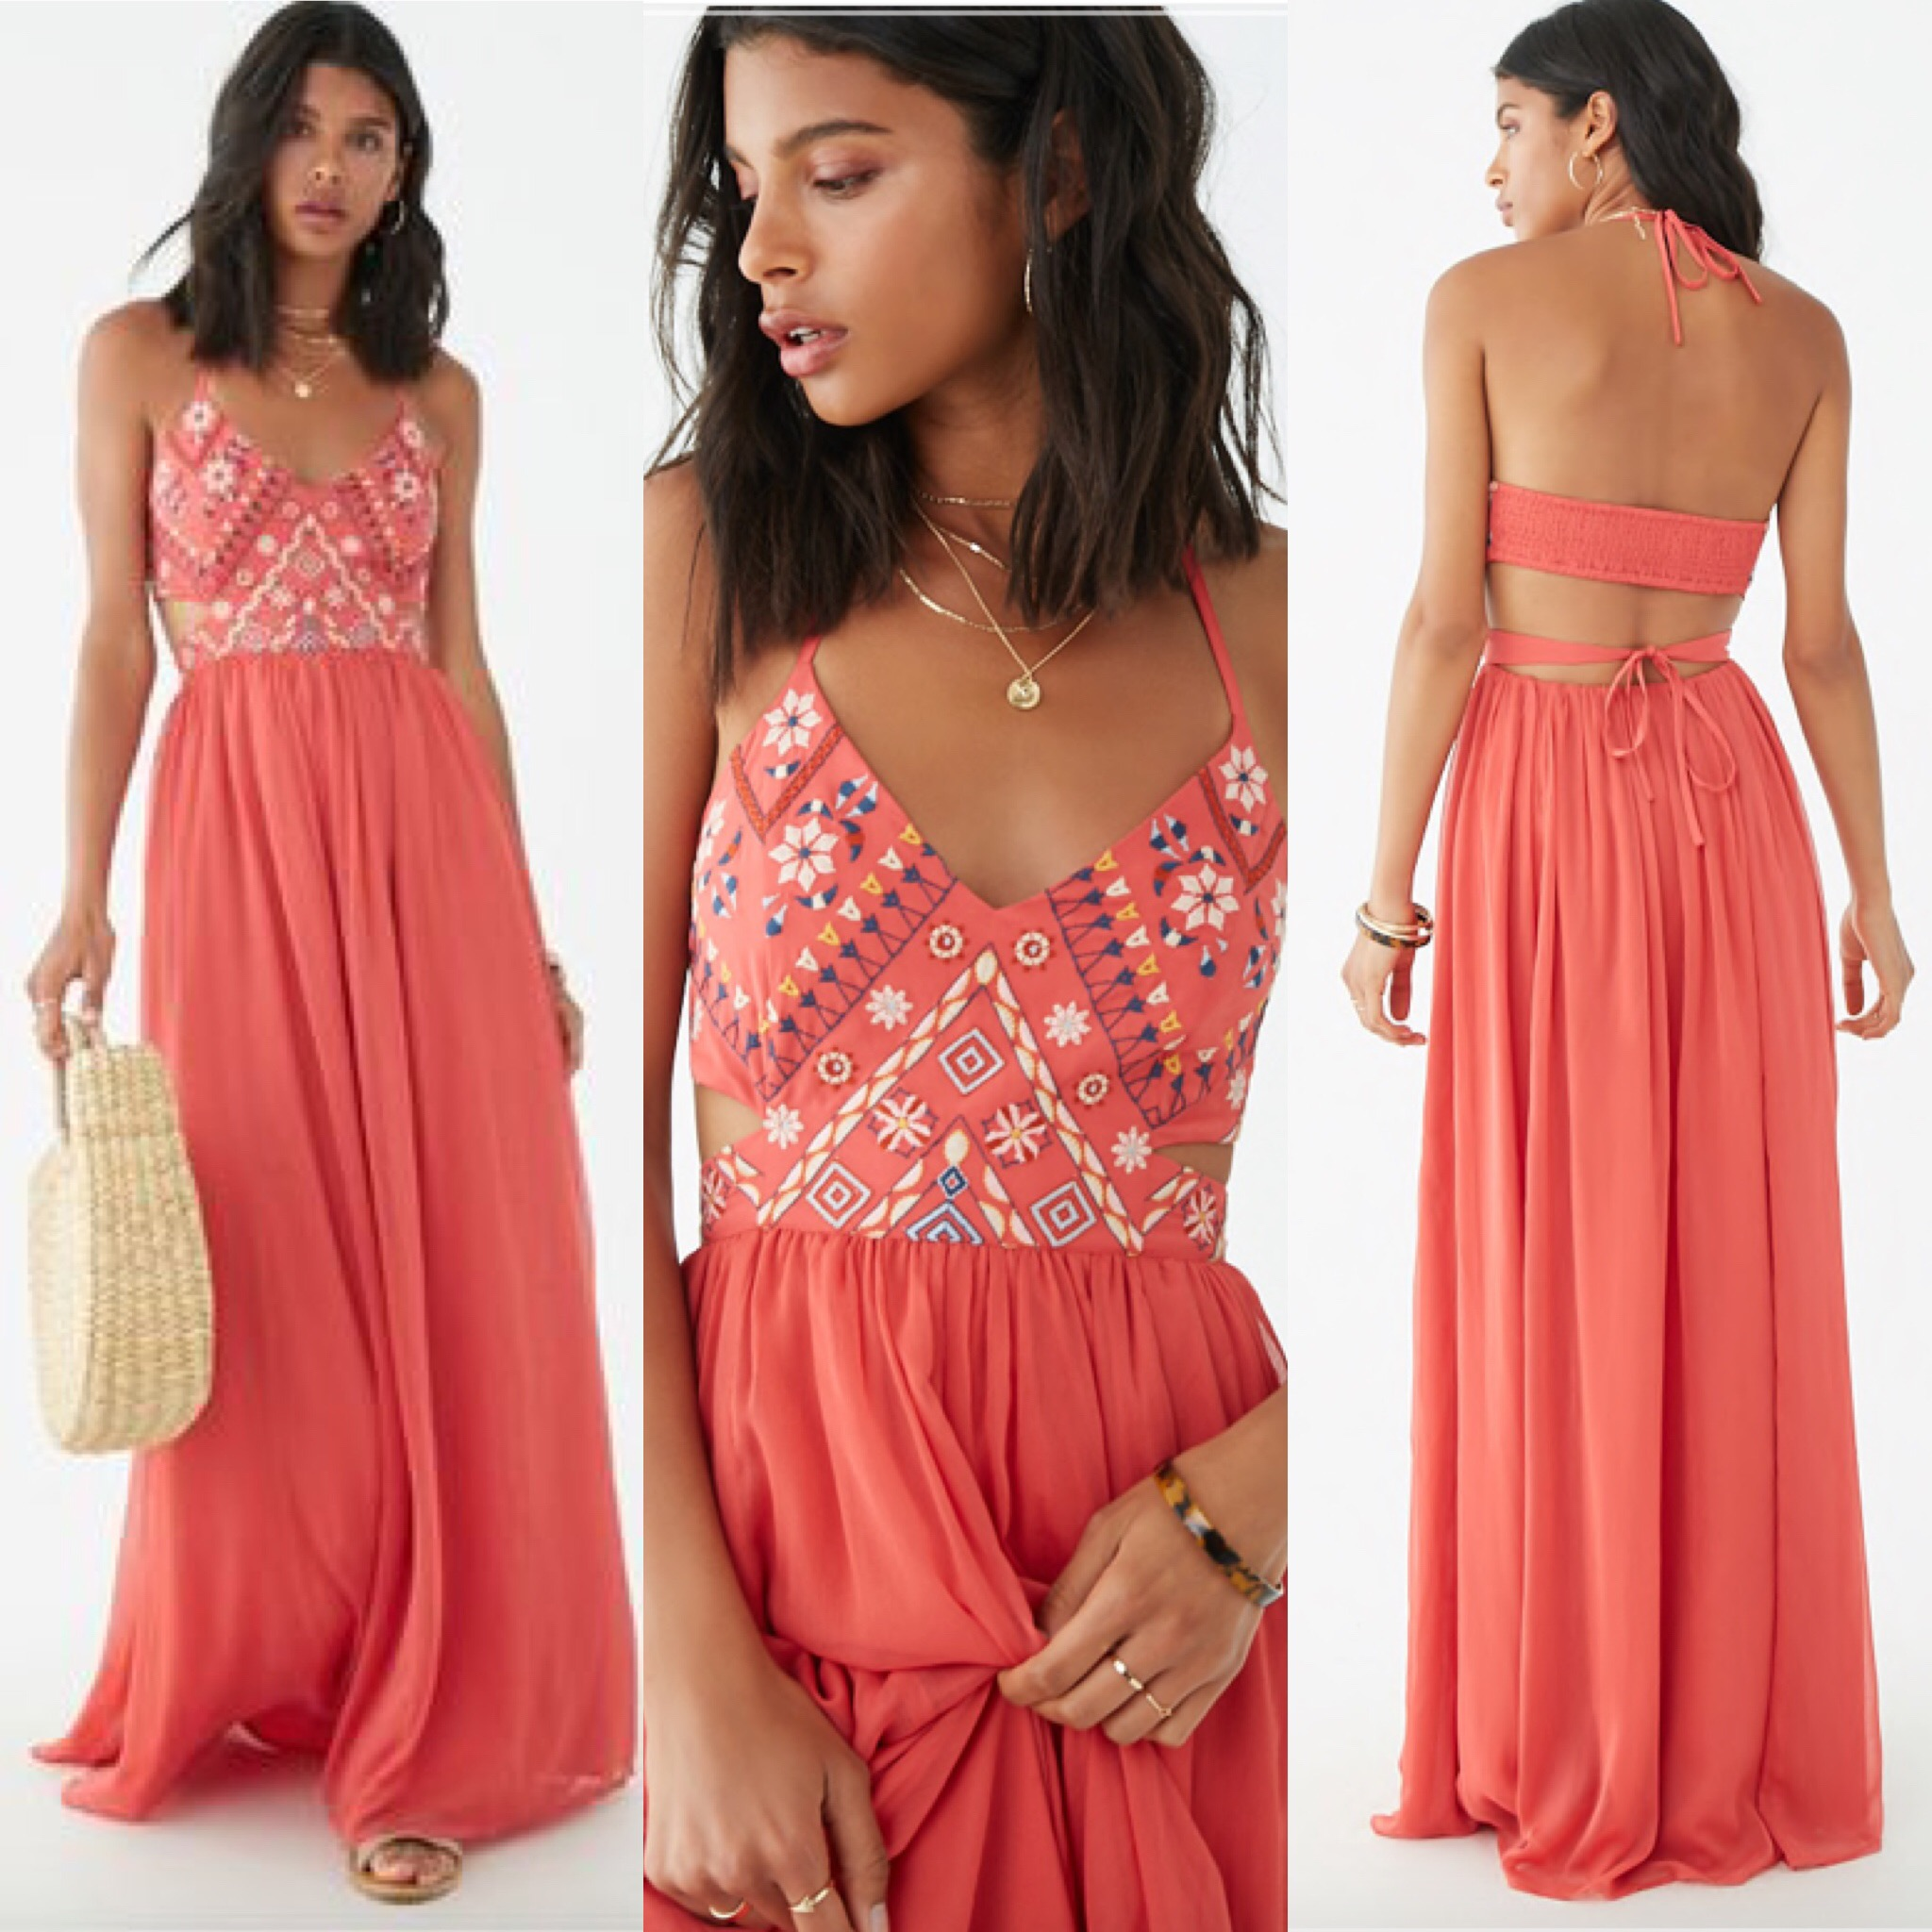 Geo-Embroidered Billowy Halter Dress-Halter Dress, Beach Dress, Resortstyle, peach dress, Embroidered dress,